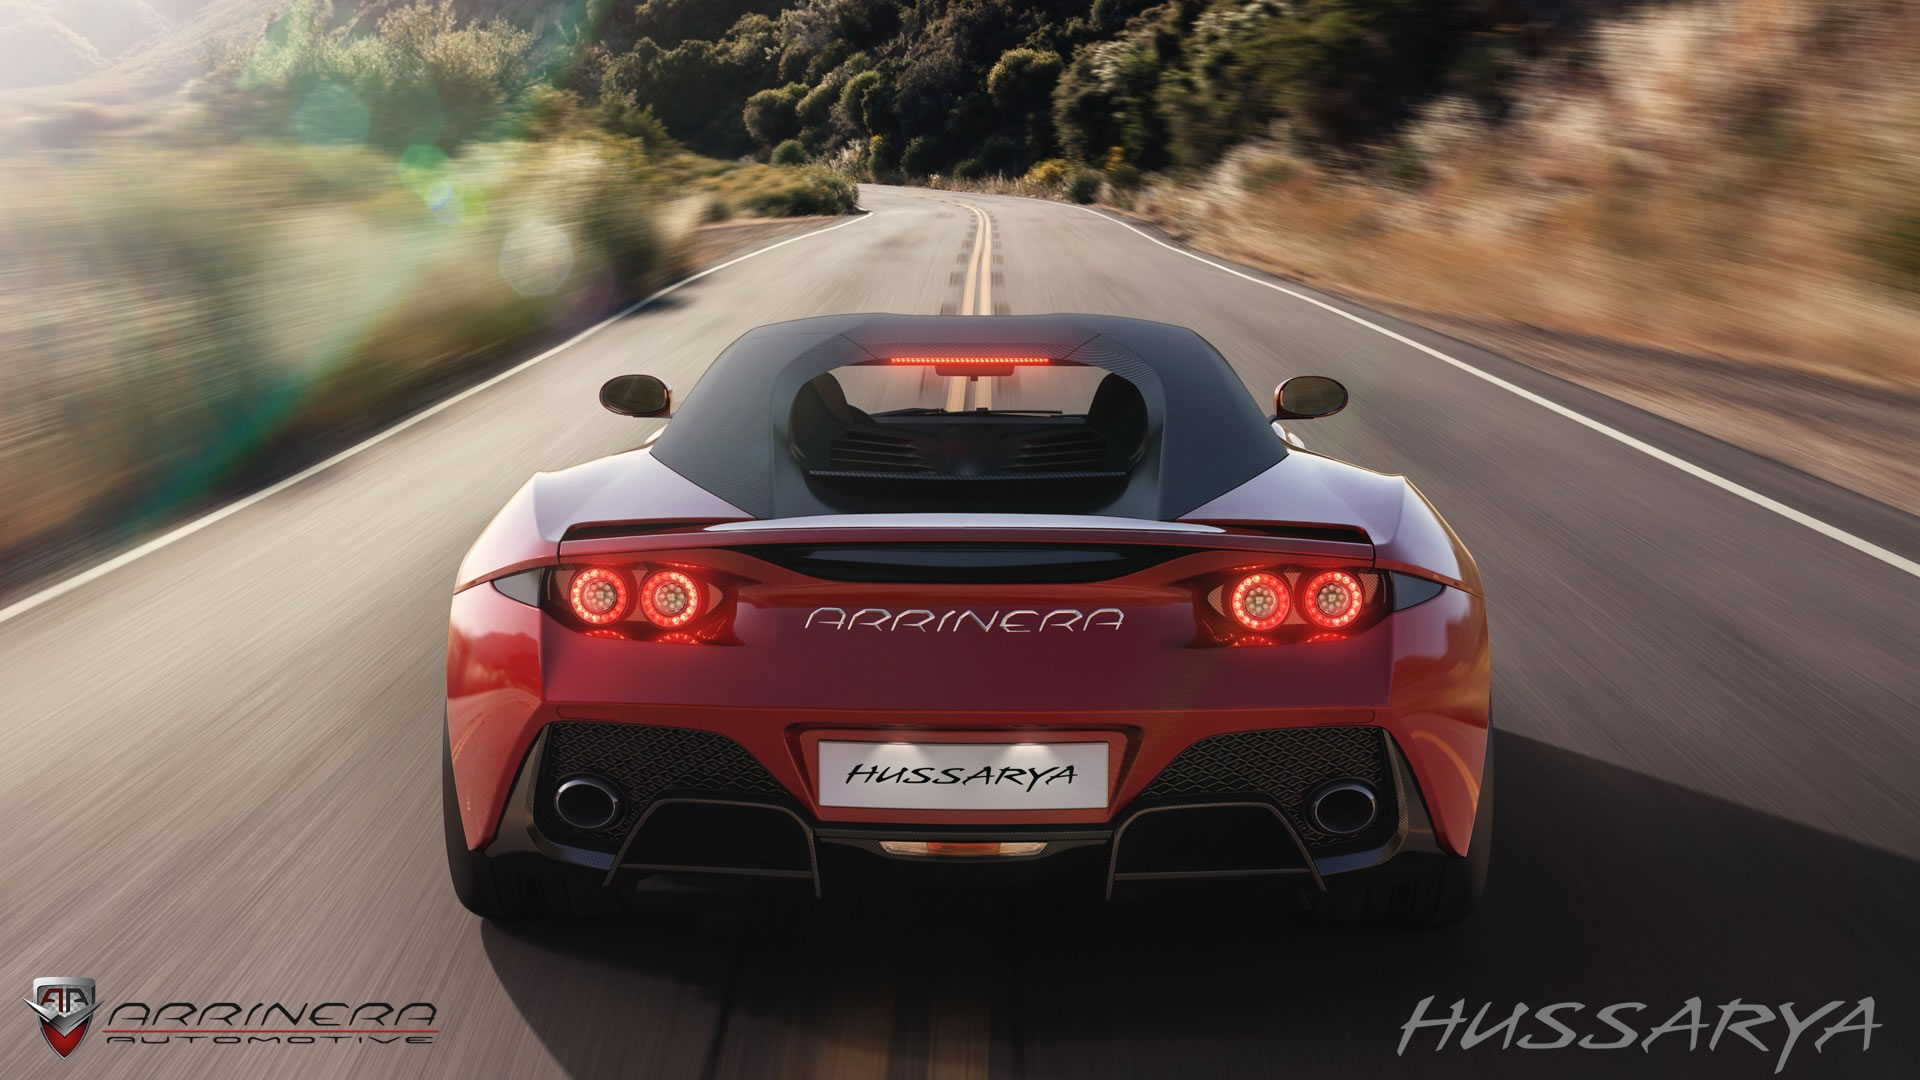 2015 Arrinera Hussarya Rear Photo Red Color Taillights